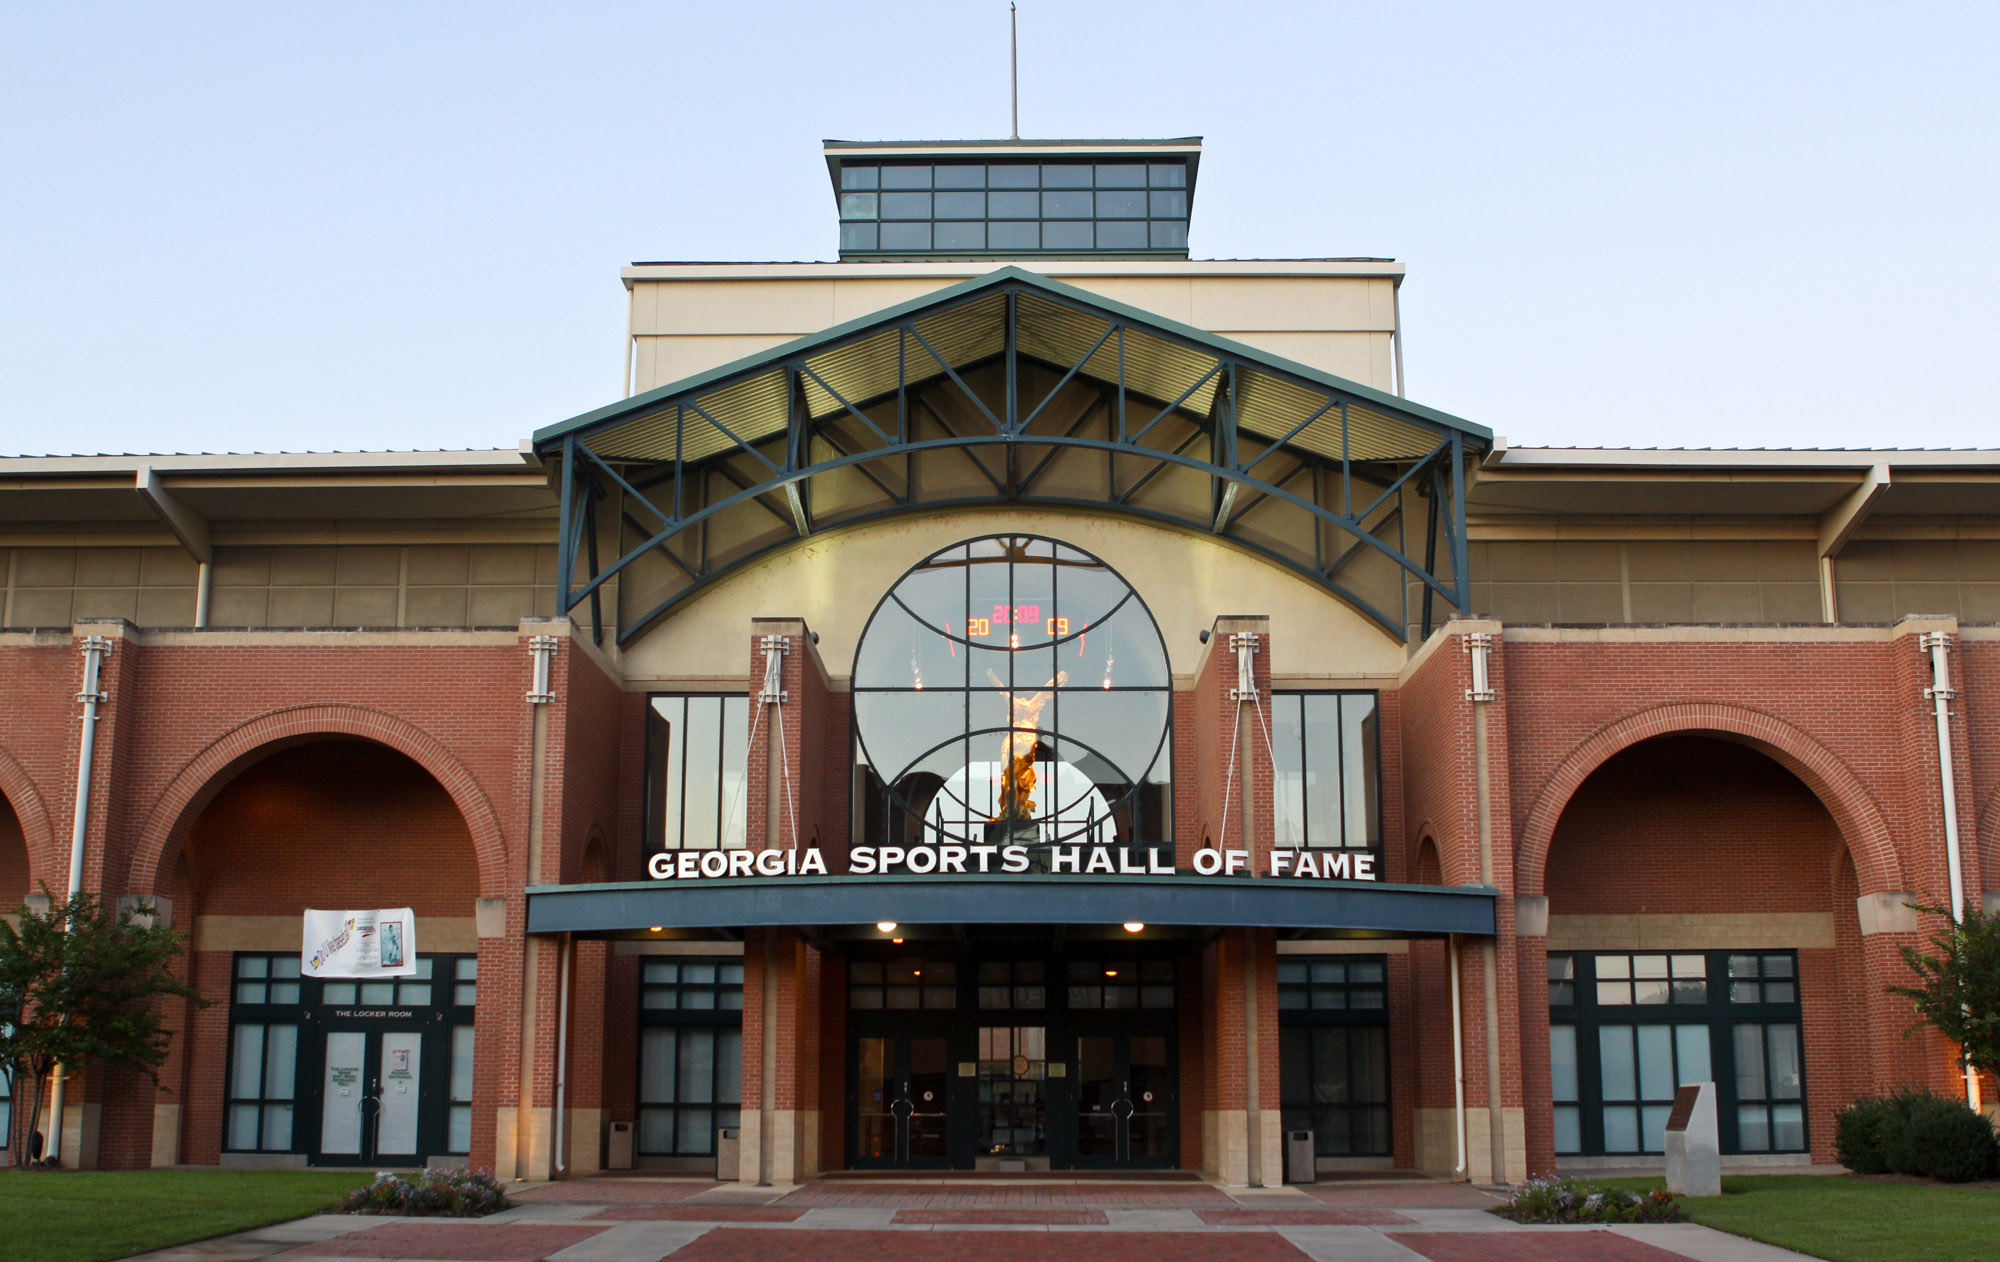 Georgia Sports Hall of Fame in Macon